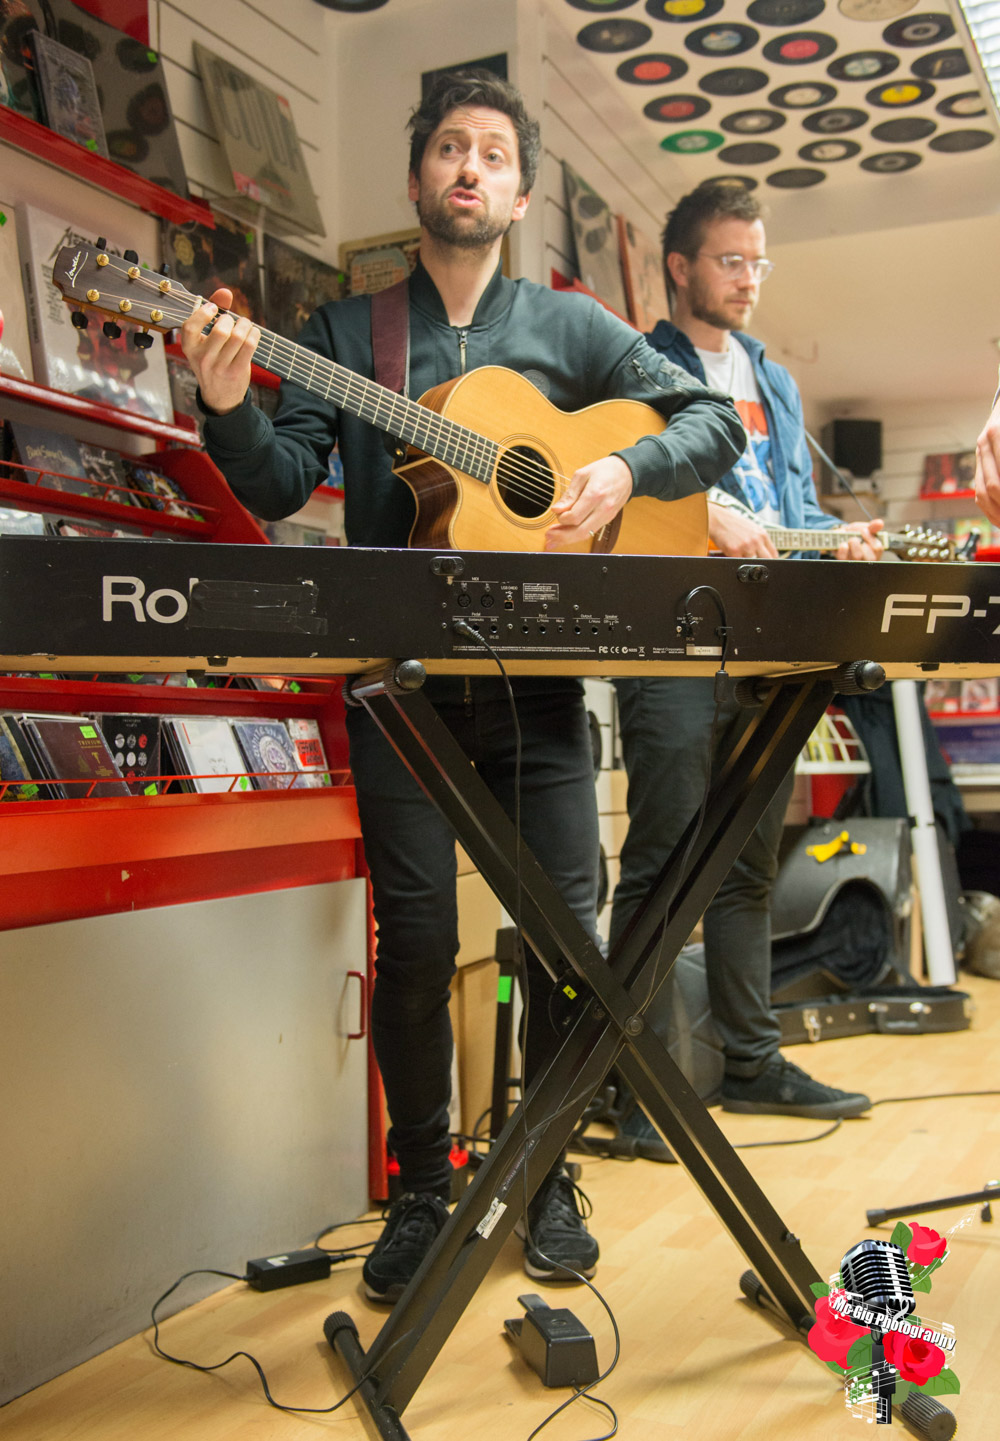 Delorentos, live at Rollercoaster Records. Photo: Ian McDonnell/Mc Gig Photography